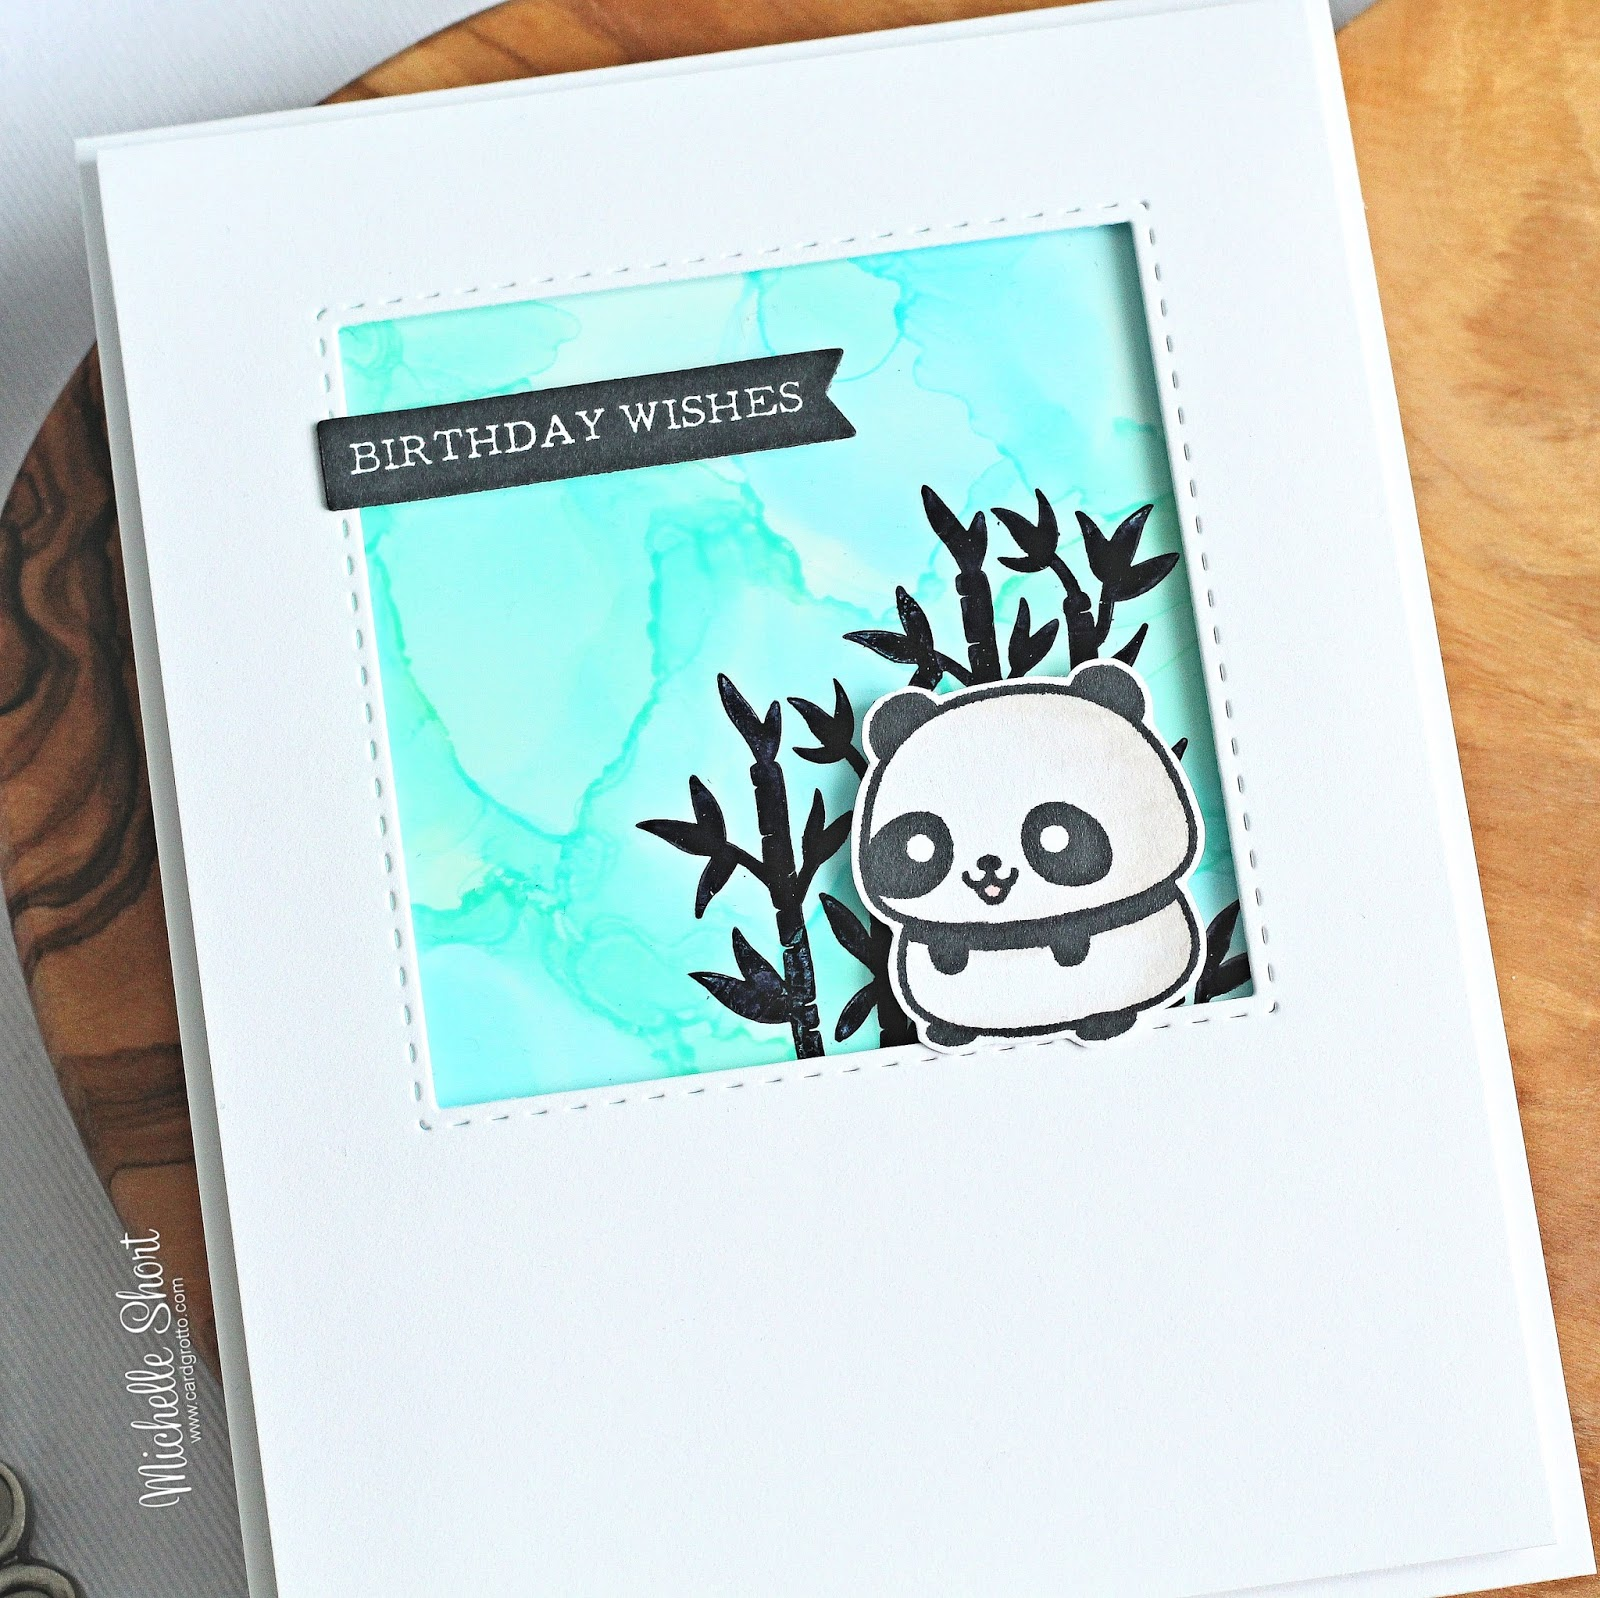 The Card Grotto: March 2018